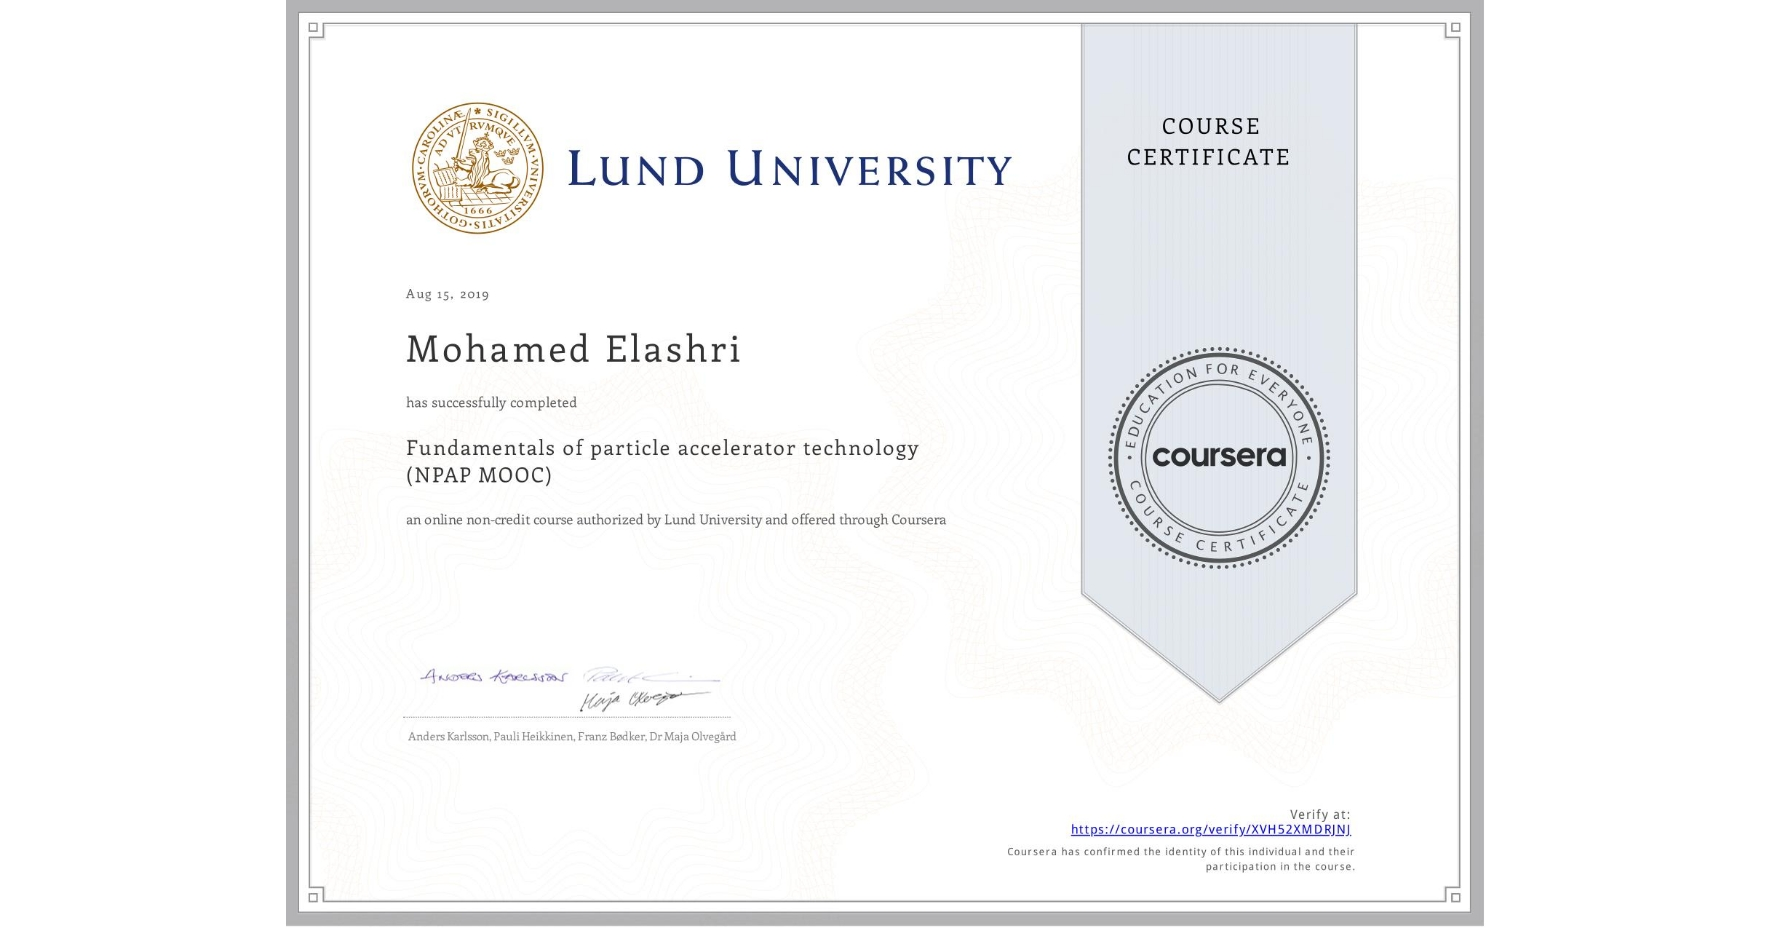 View certificate for Mohamed Elashri, Fundamentals of particle accelerator technology  (NPAP MOOC), an online non-credit course authorized by Lund University and offered through Coursera